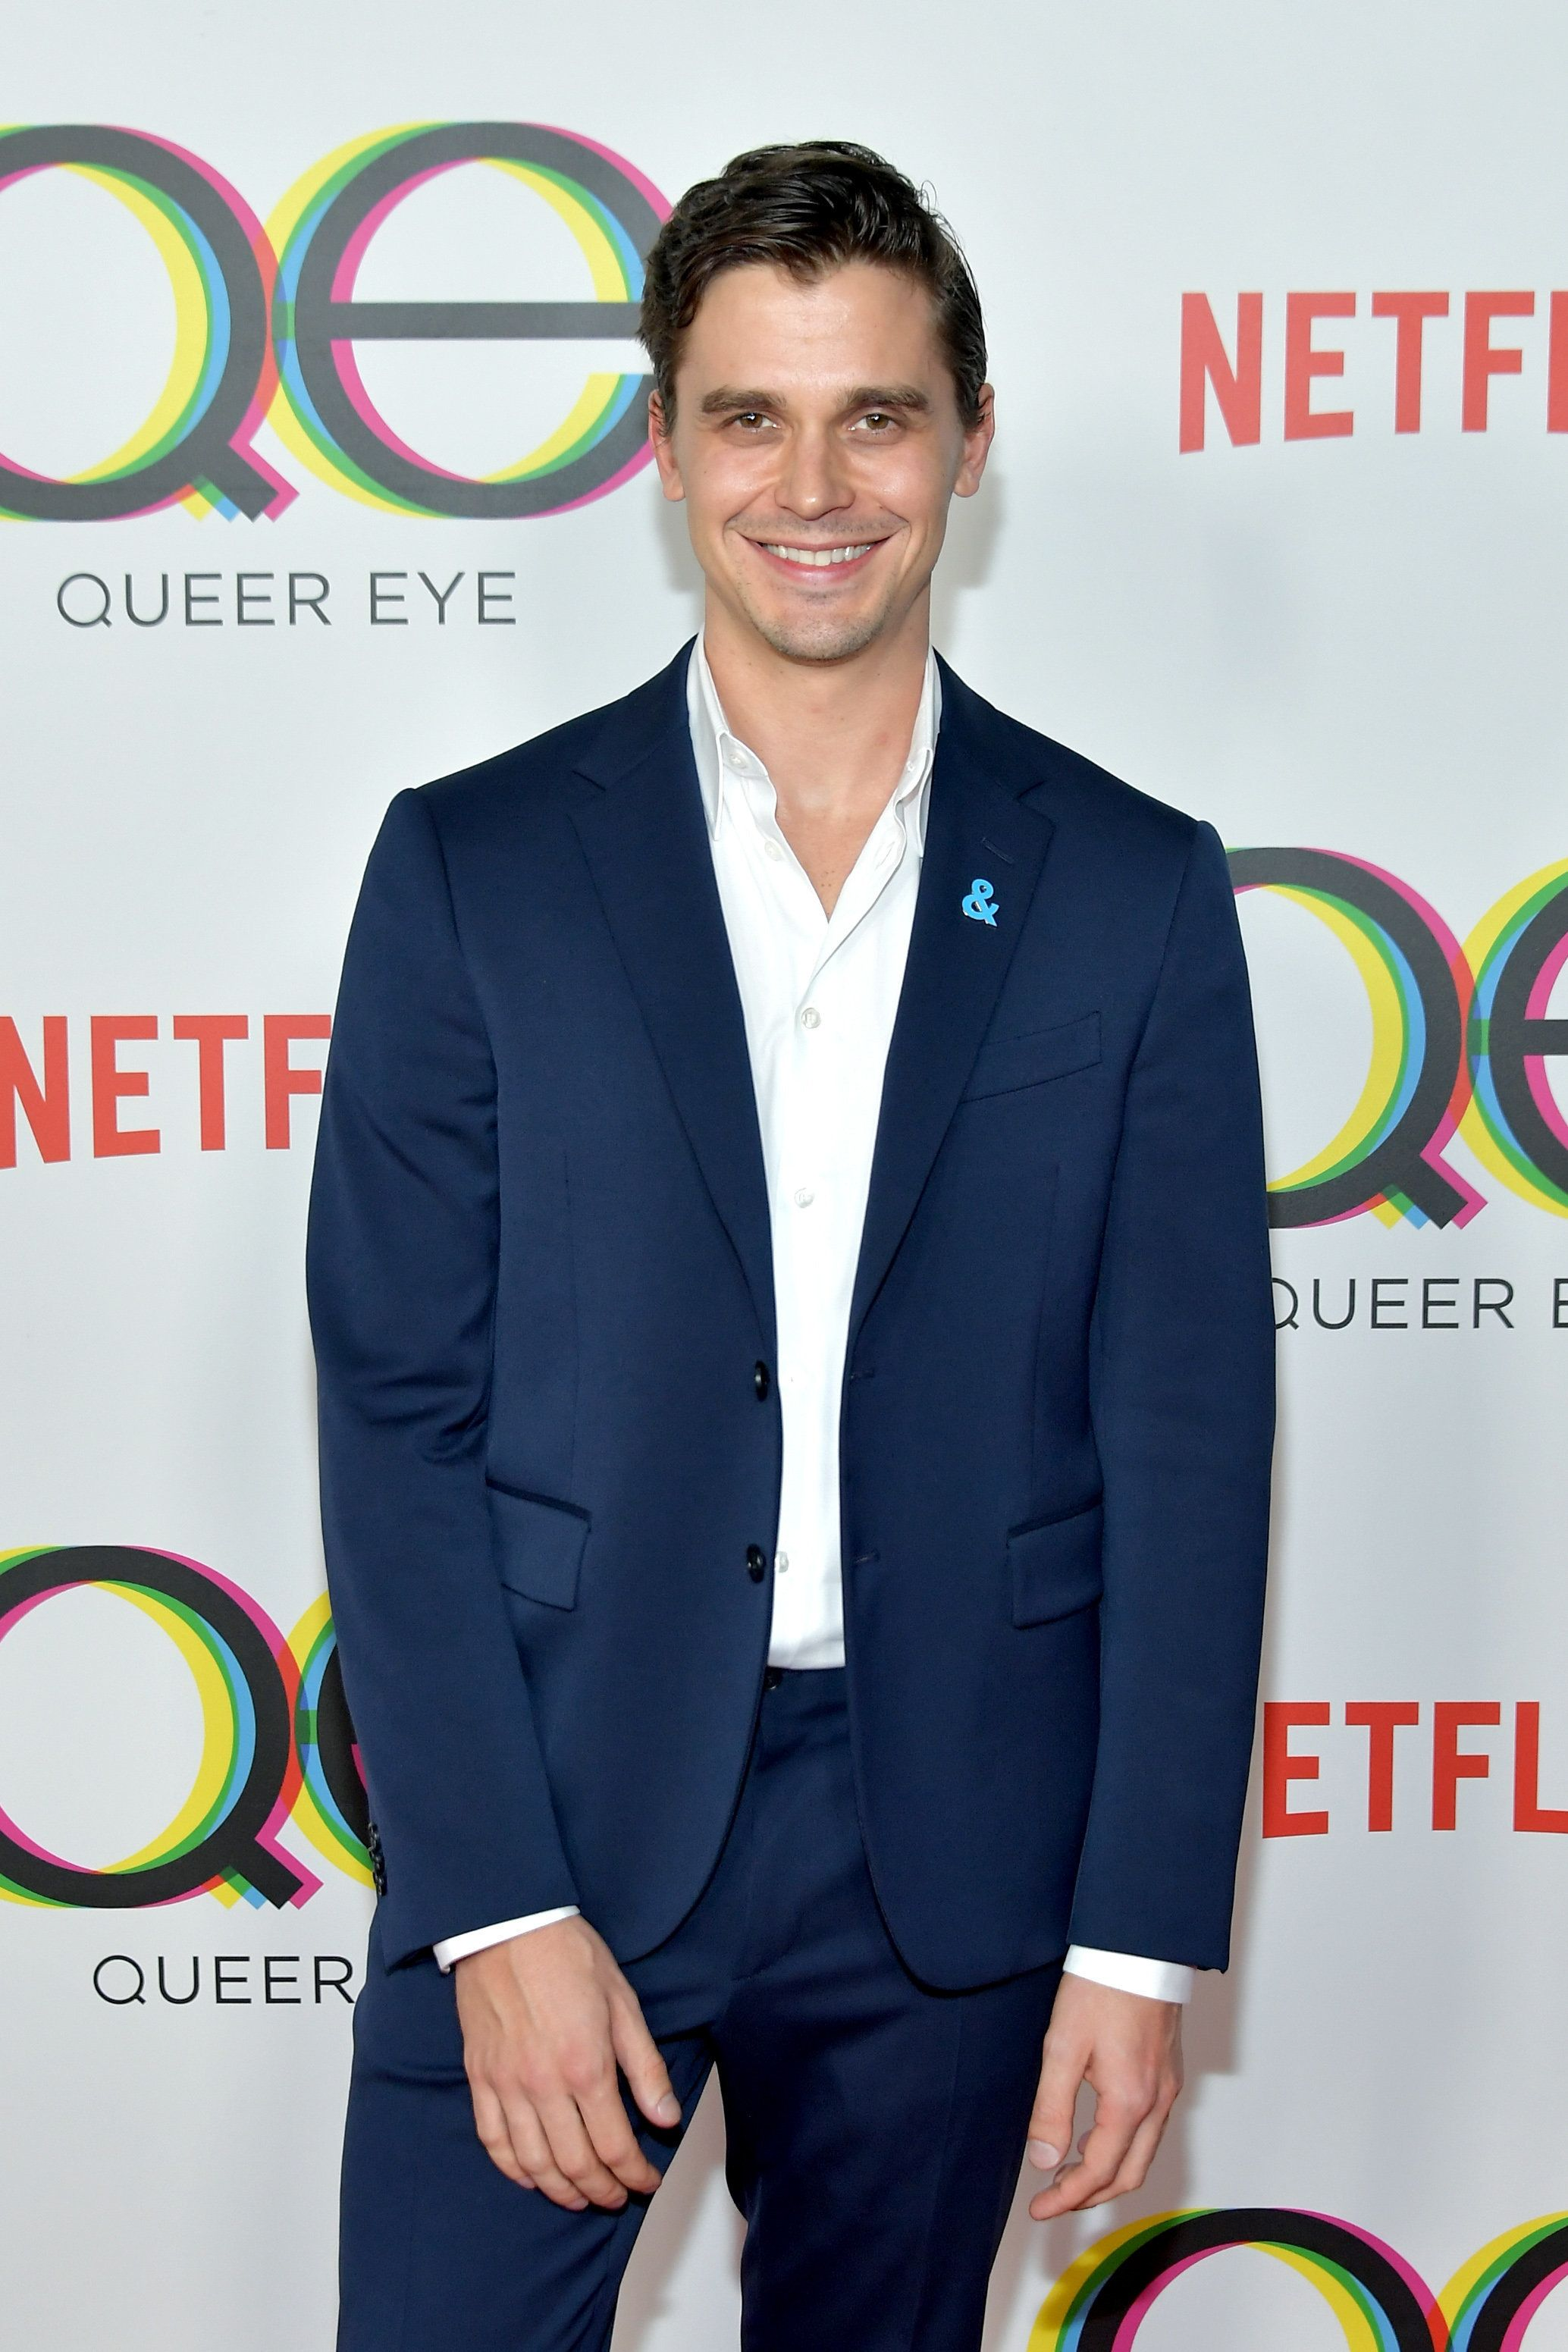 Antoni From 'Queer Eye' Has His Very Own Cookbook